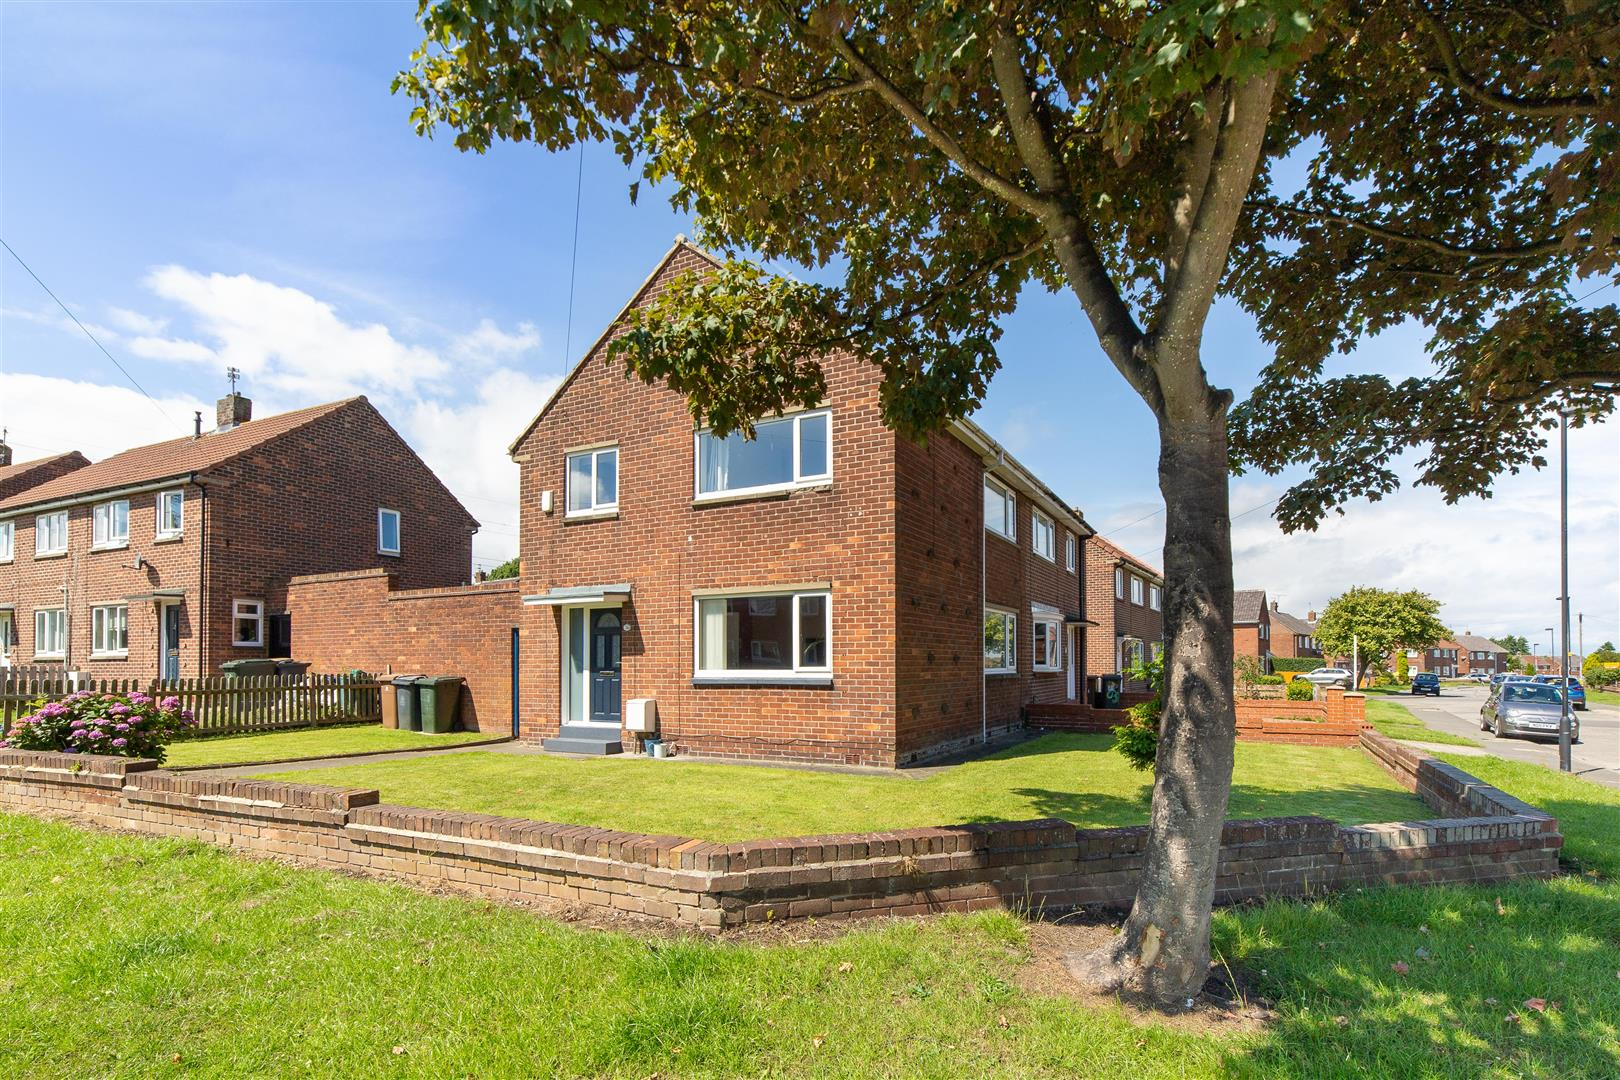 3 bed semi-detached house for sale in Colwell Road, Shiremoor - Property Image 1